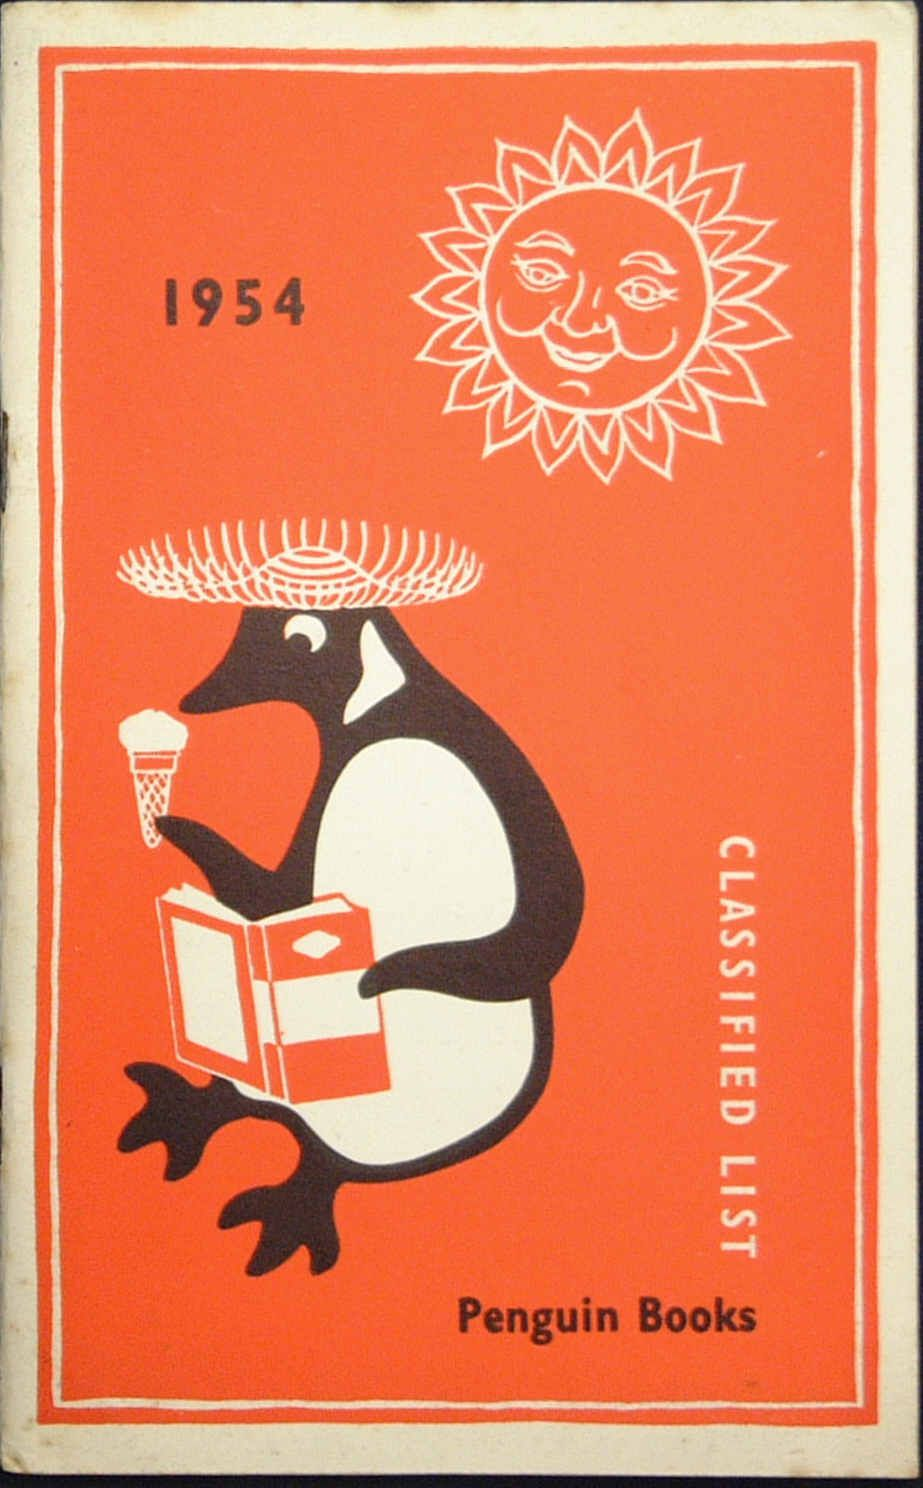 Penguin Book Cover Posters : Vintage penguin book cover posters